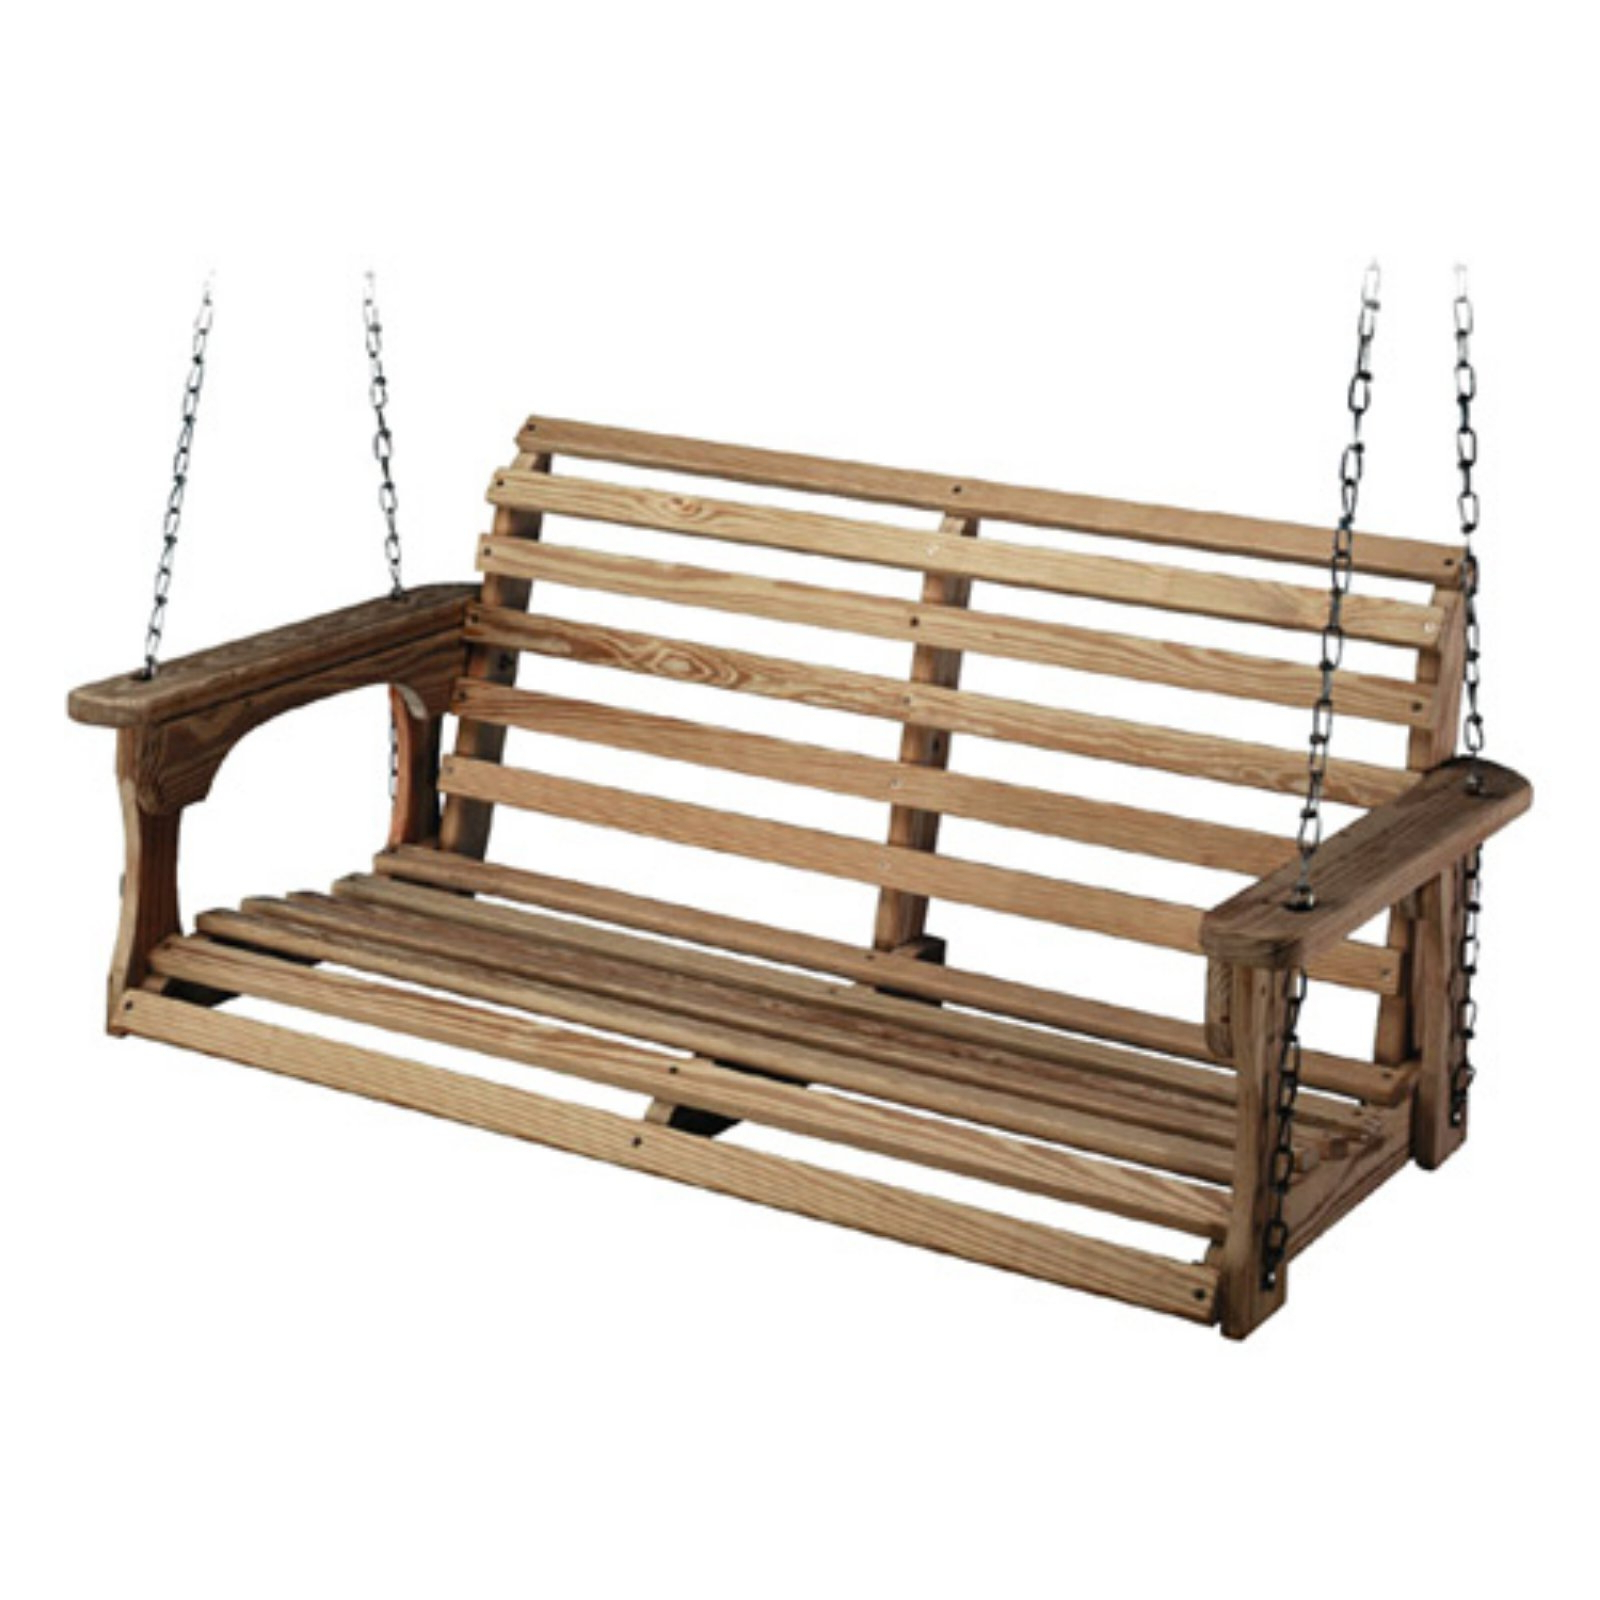 Most Recently Released Fordyce Porch Swings Intended For Beecham Swing Co. Roll Back Treated Wood Porch Swing In 2019 (Gallery 6 of 30)